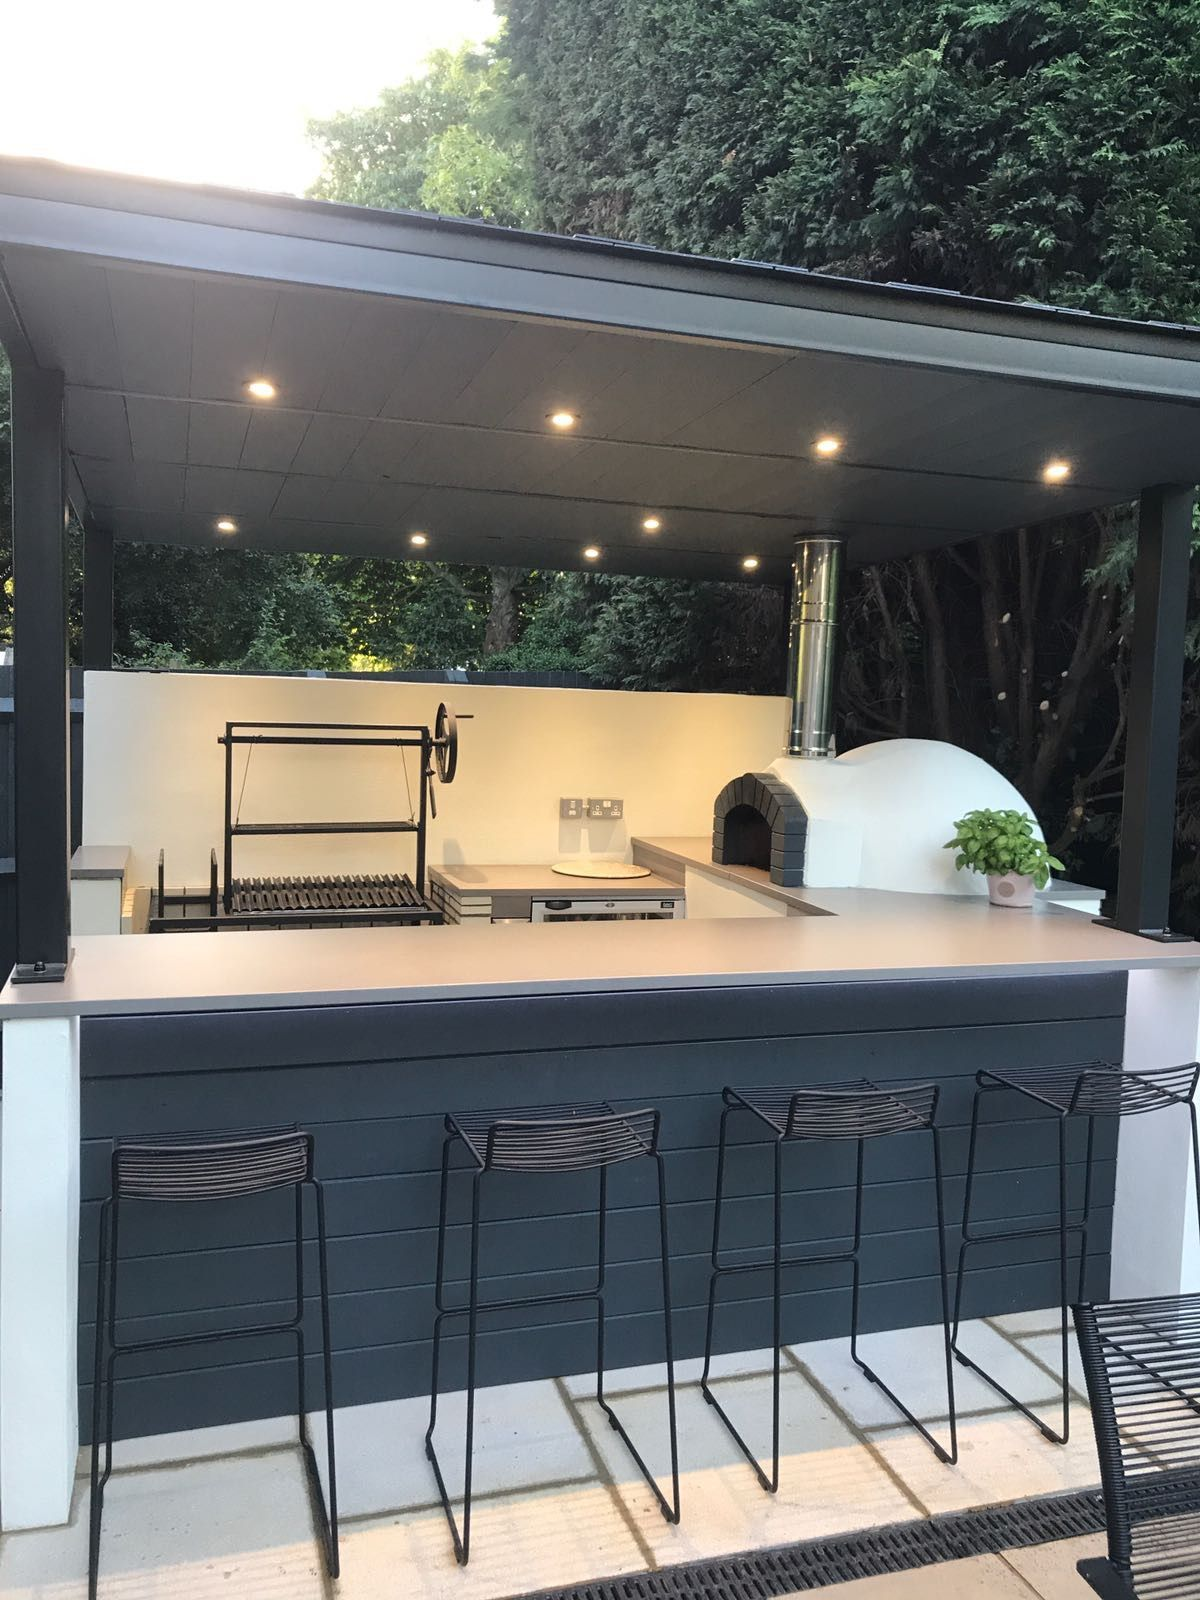 Pizza Oven Outdoor Kitchen Fabricated Steel Frame Above An Outdoor Bar Pizza In 2020 Small Outdoor Kitchens Outdoor Kitchen Bars Pizza Oven Outdoor Kitchen